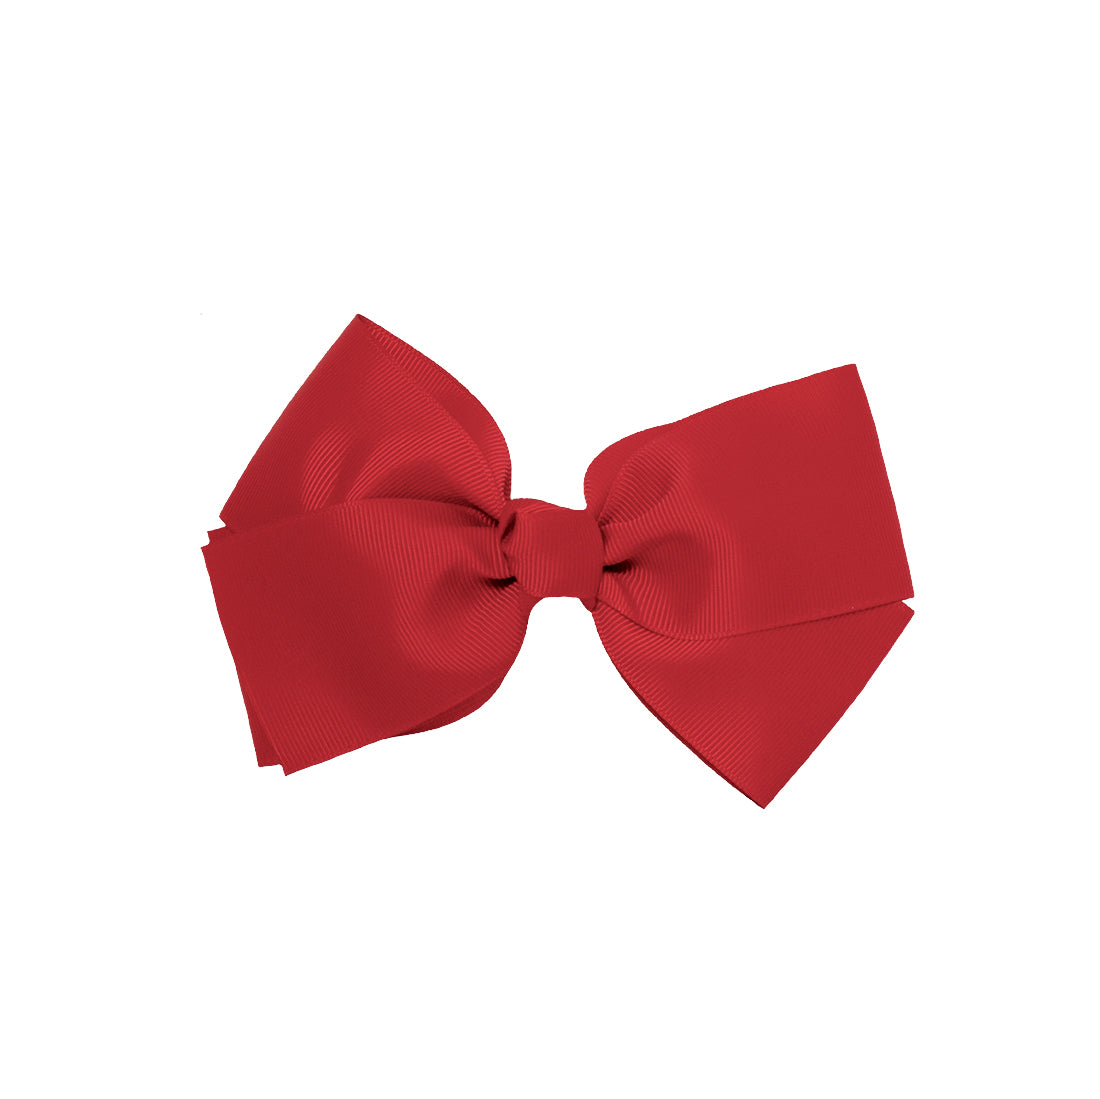 Mia® Spirit Grosgrain Ribbon Bow Barrette - large size - maroon red color - clasp barrette - designed by #MiaKaminski of Mia Beauty